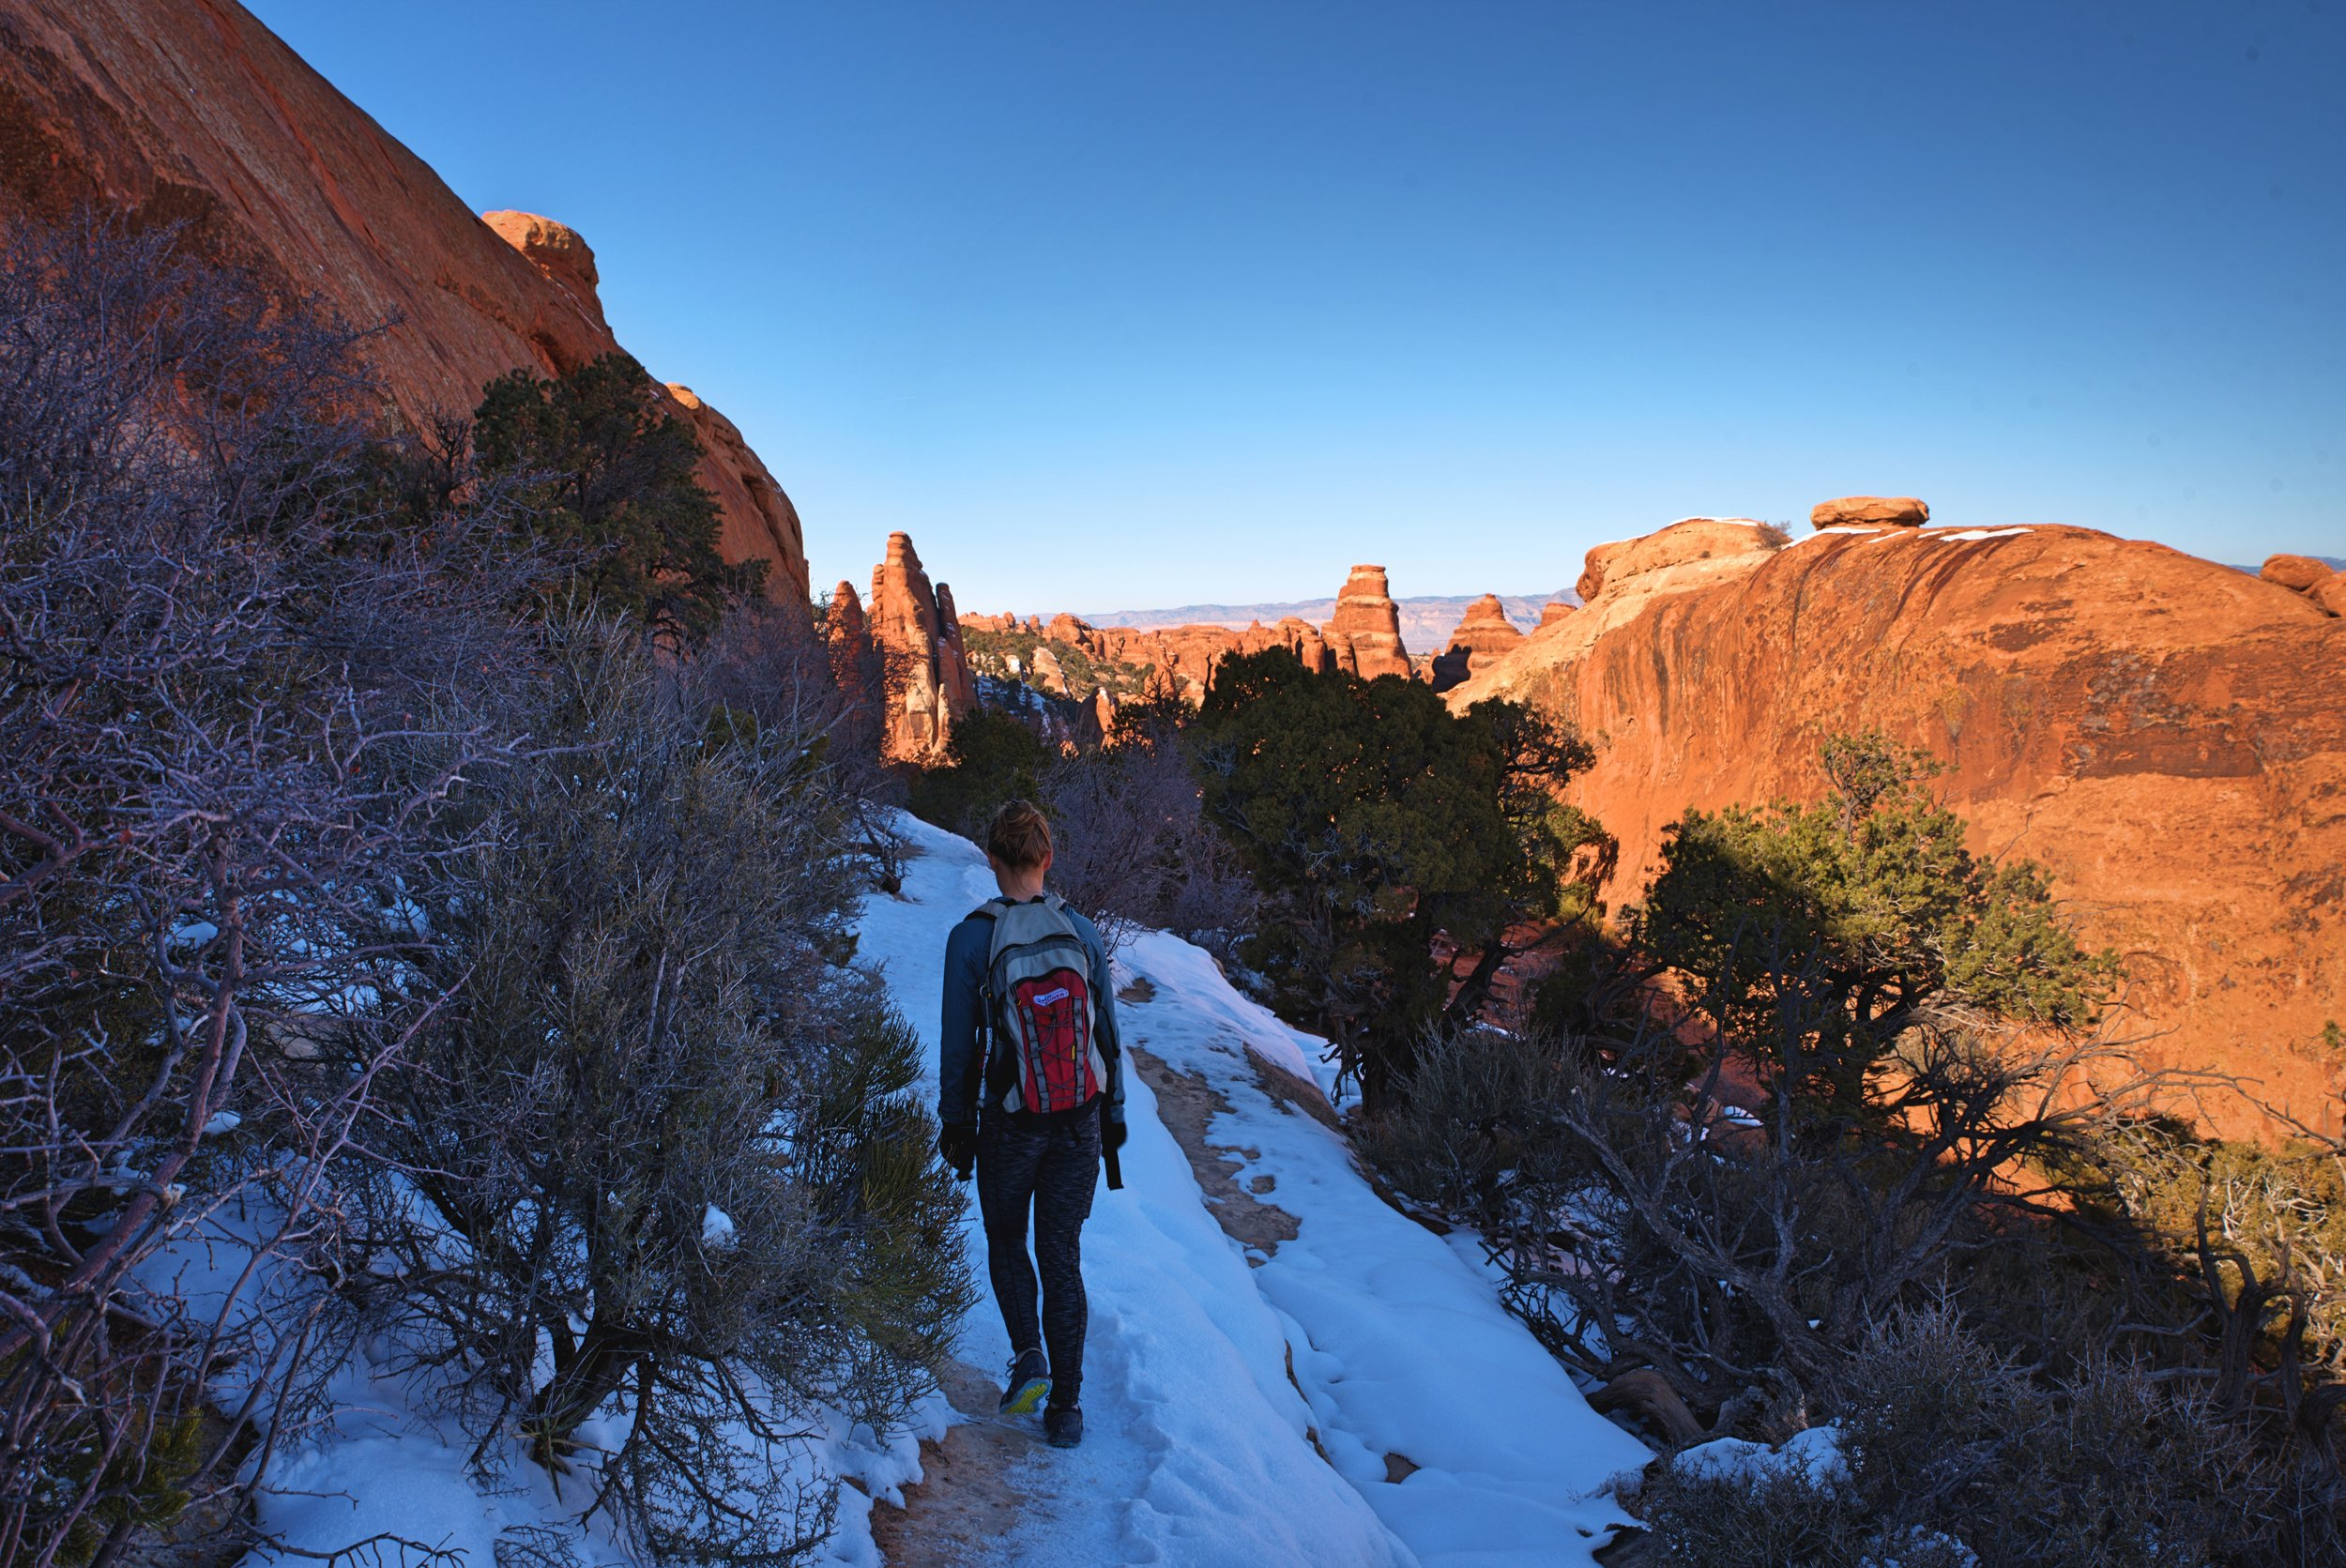 Ice and snow made reaching Double O Arch a bit tricky.